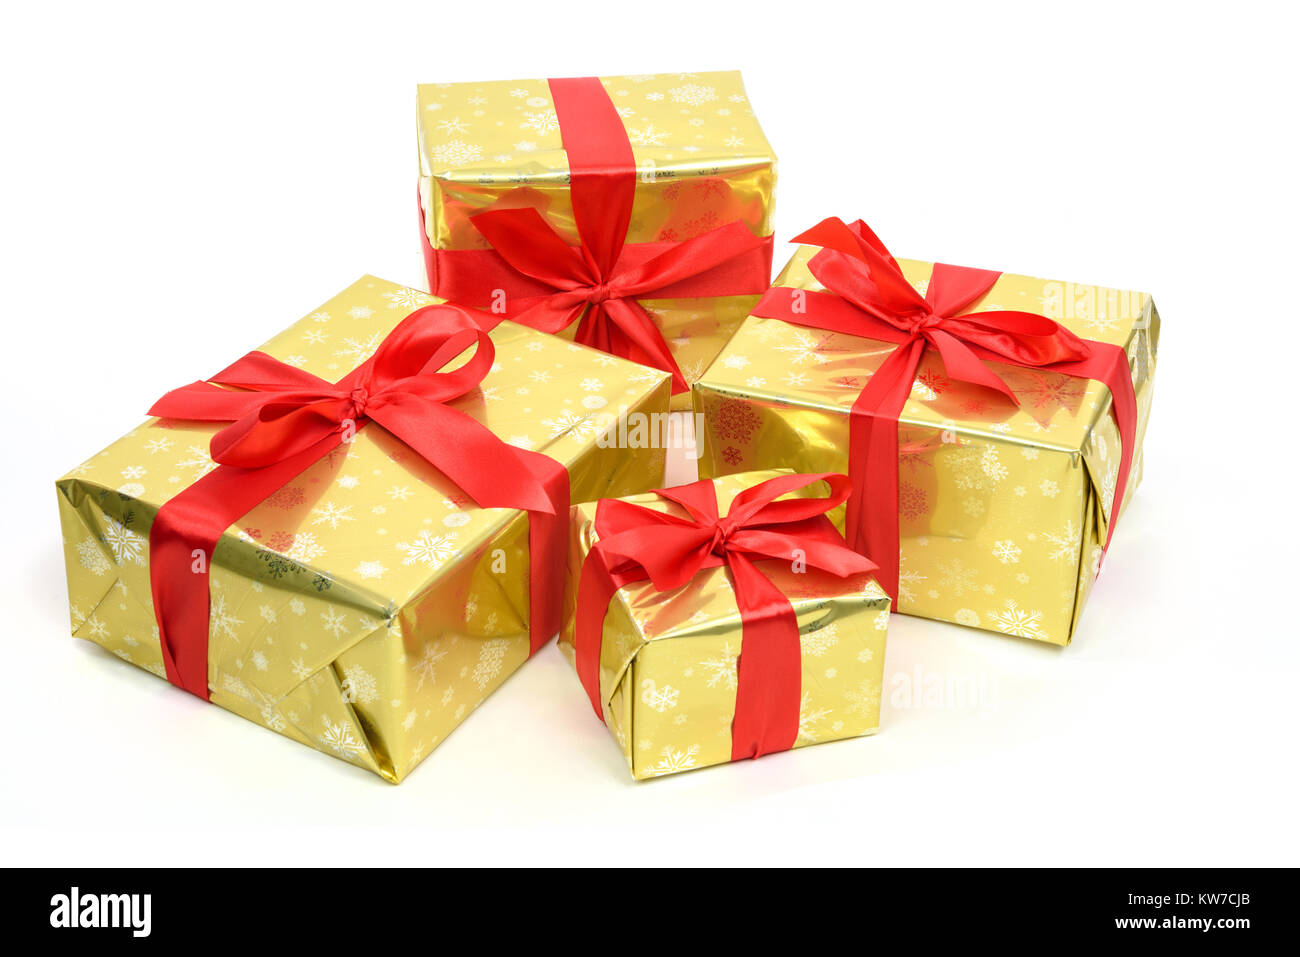 Concept of luxury Christmas gifts - boxes packed in golden paper and ...